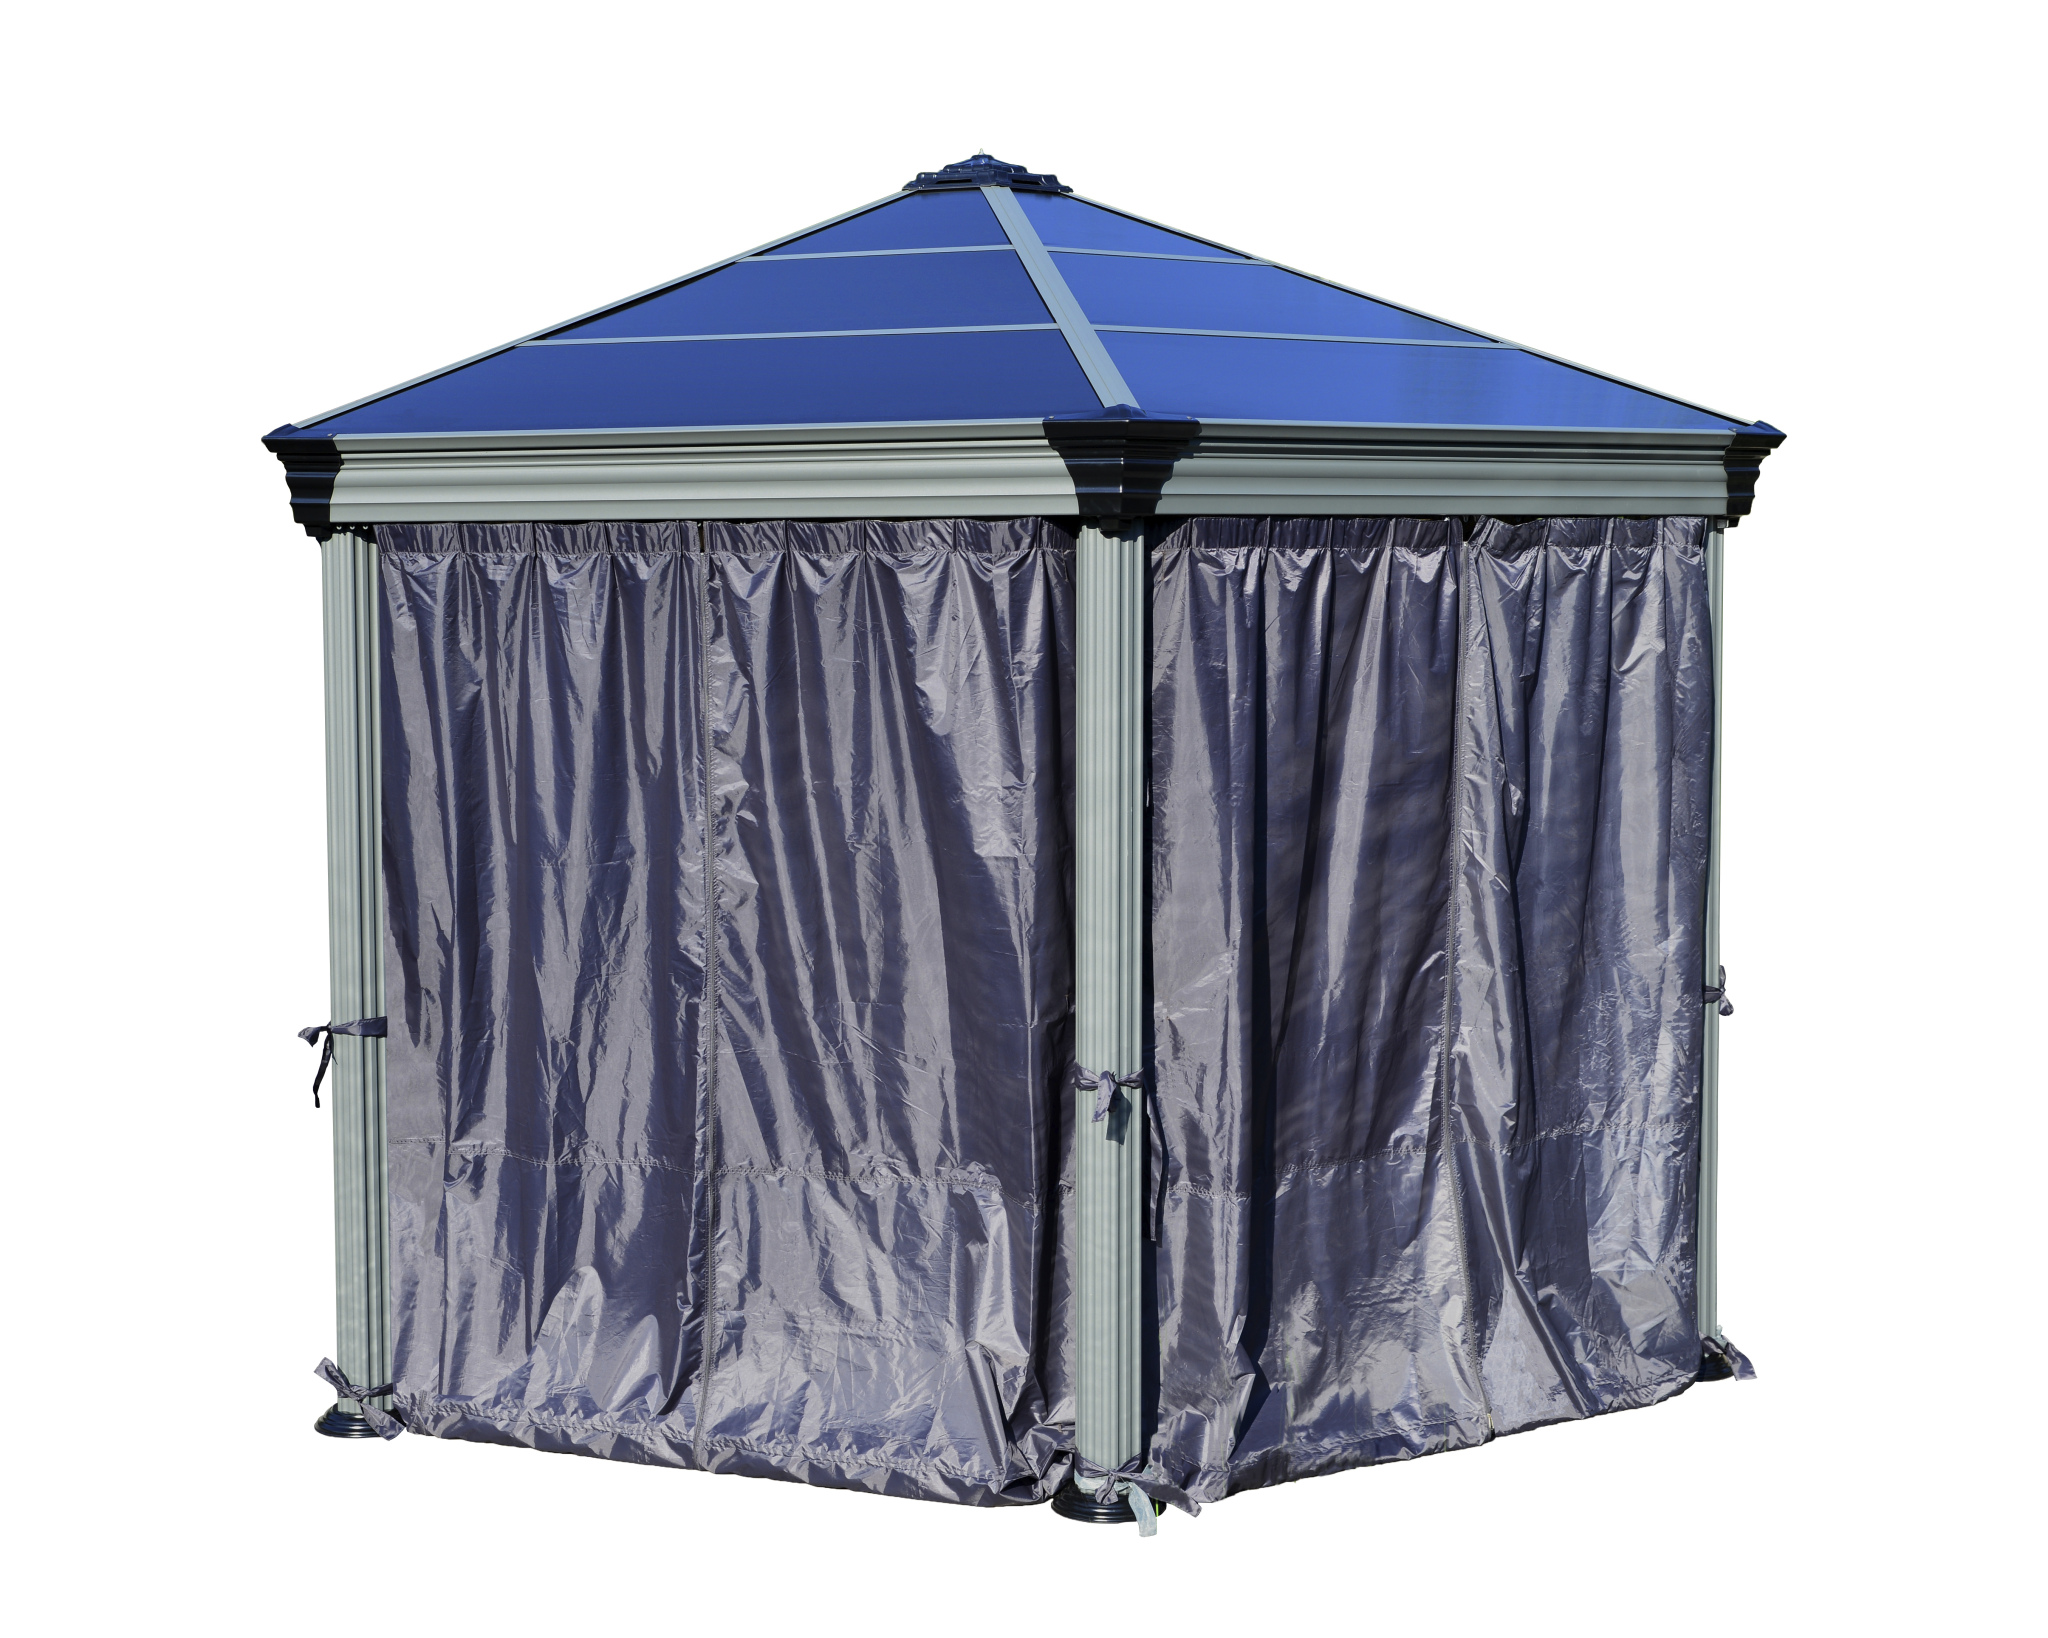 Roma Gazebo Curtain set - 6 Piece